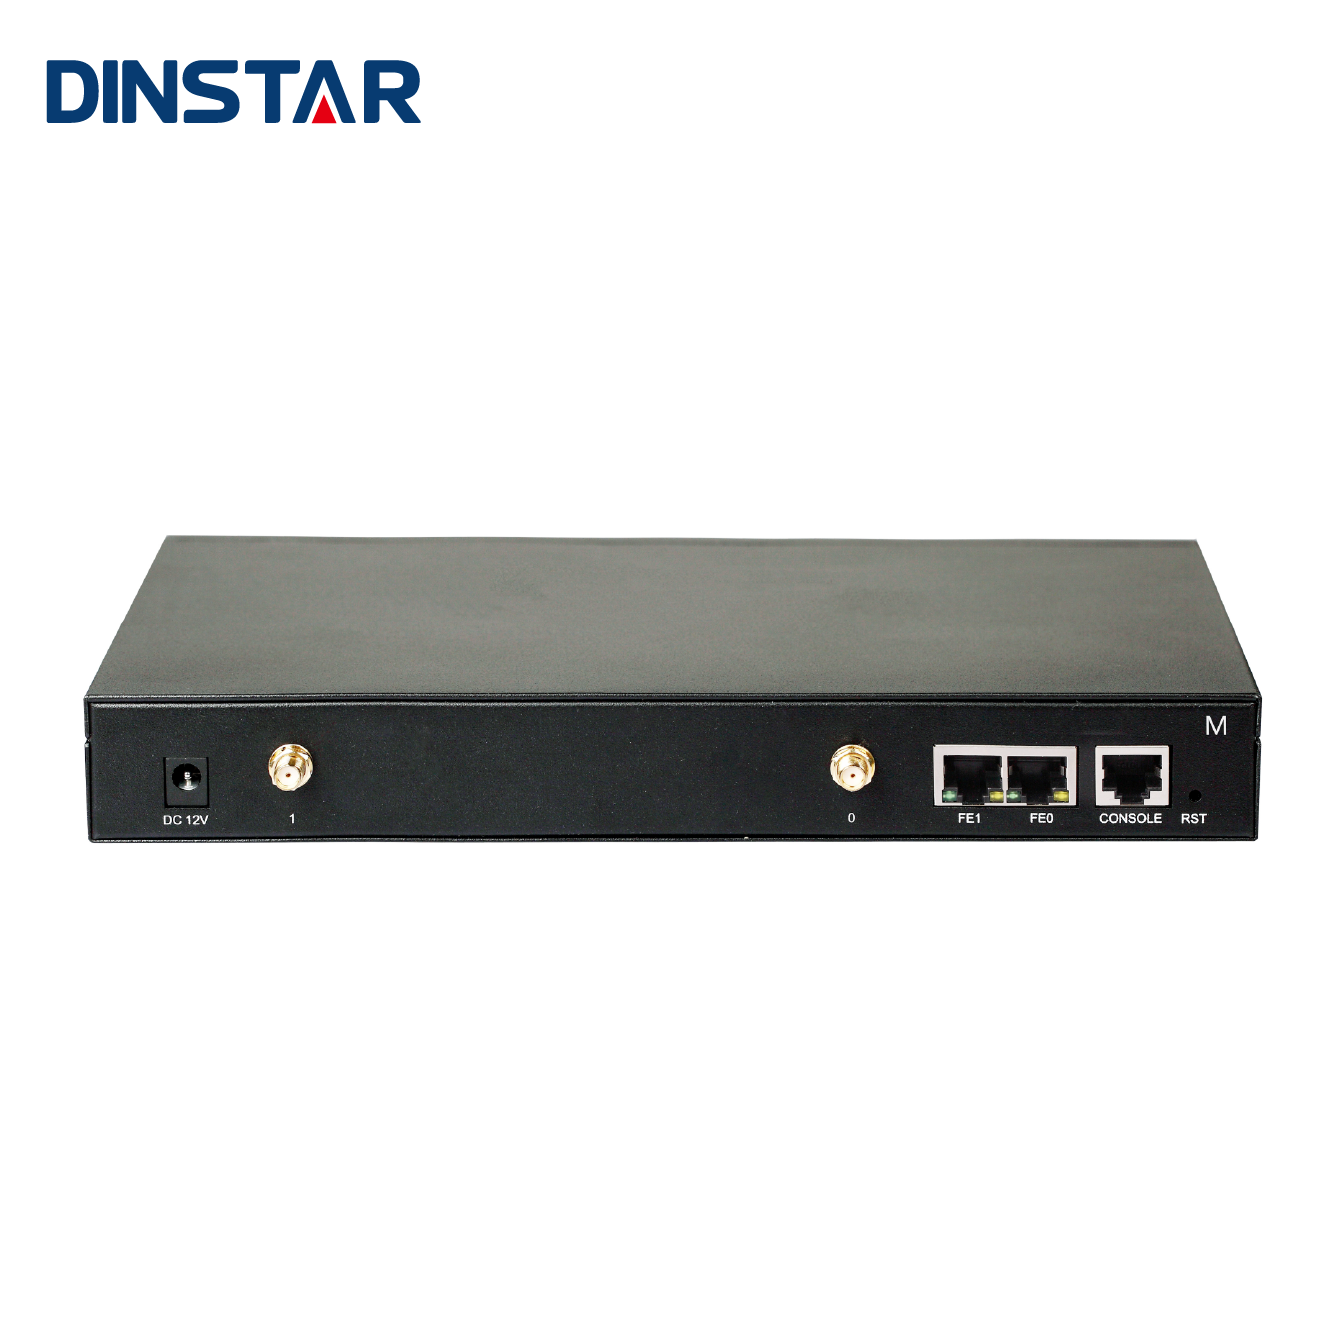 DINSTAR call forward SIP ethernet voip product 8 port goip gsm gateway